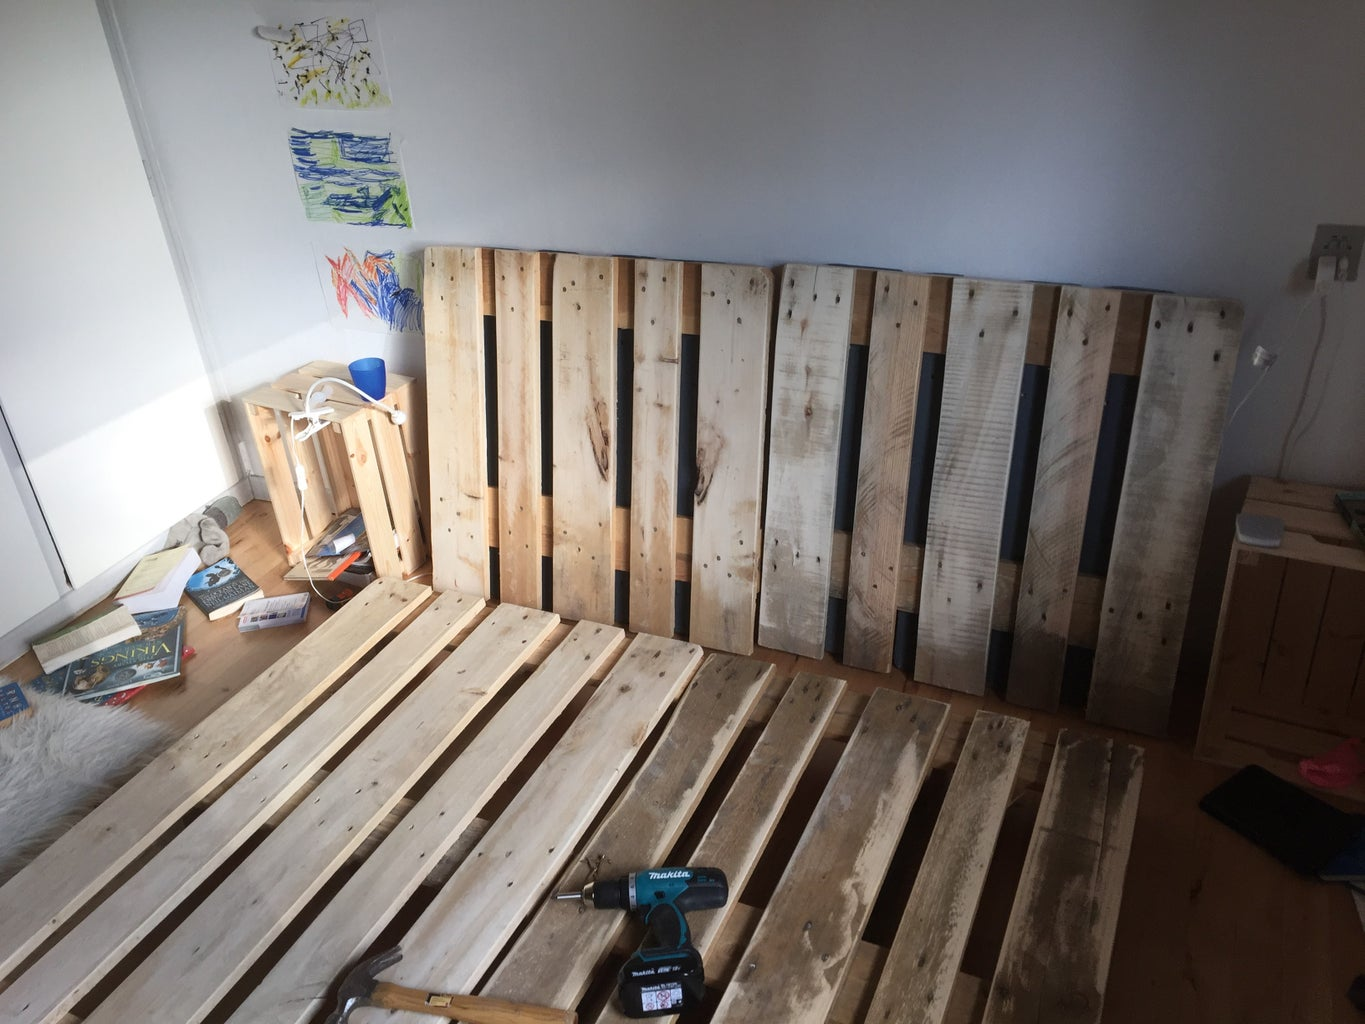 Assemble the Bed in Your Bedroom